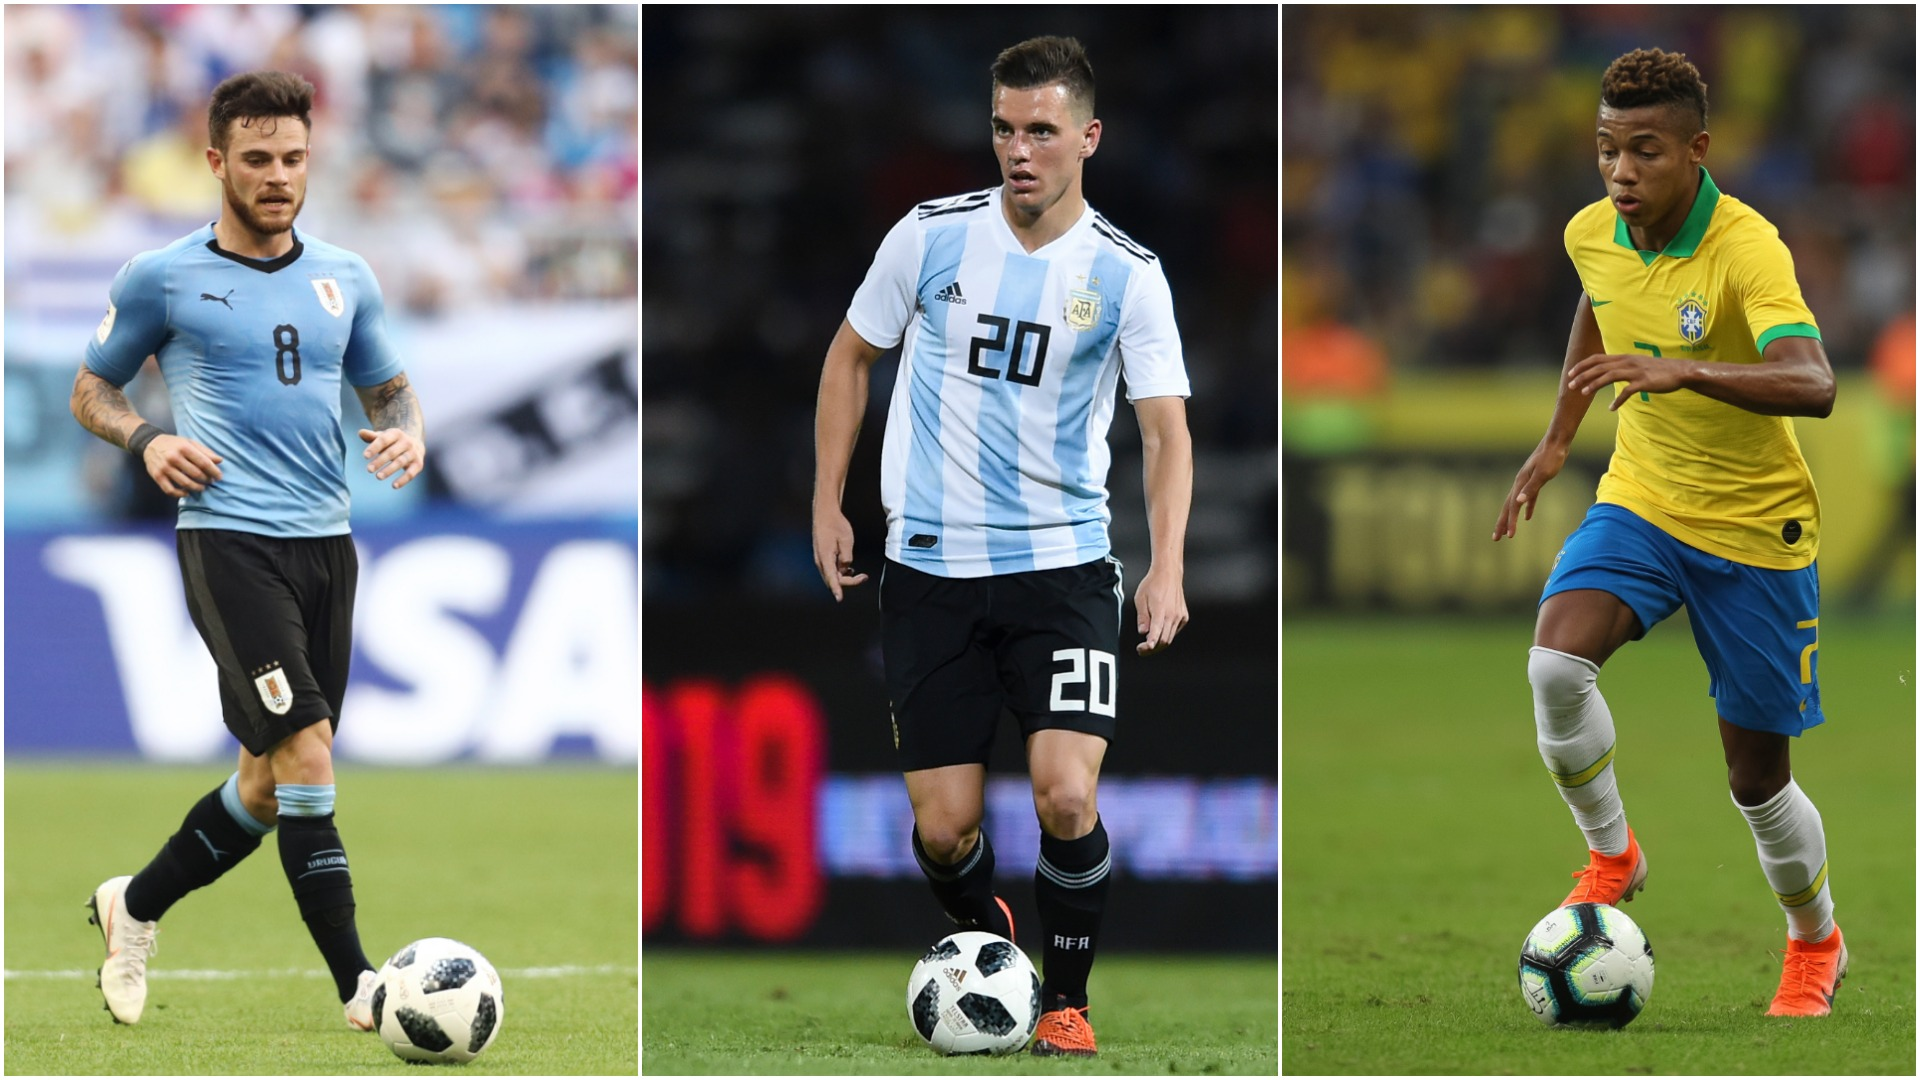 Lo Celso, Nandez, Neres - Experts pick their players to watch at the Copa America